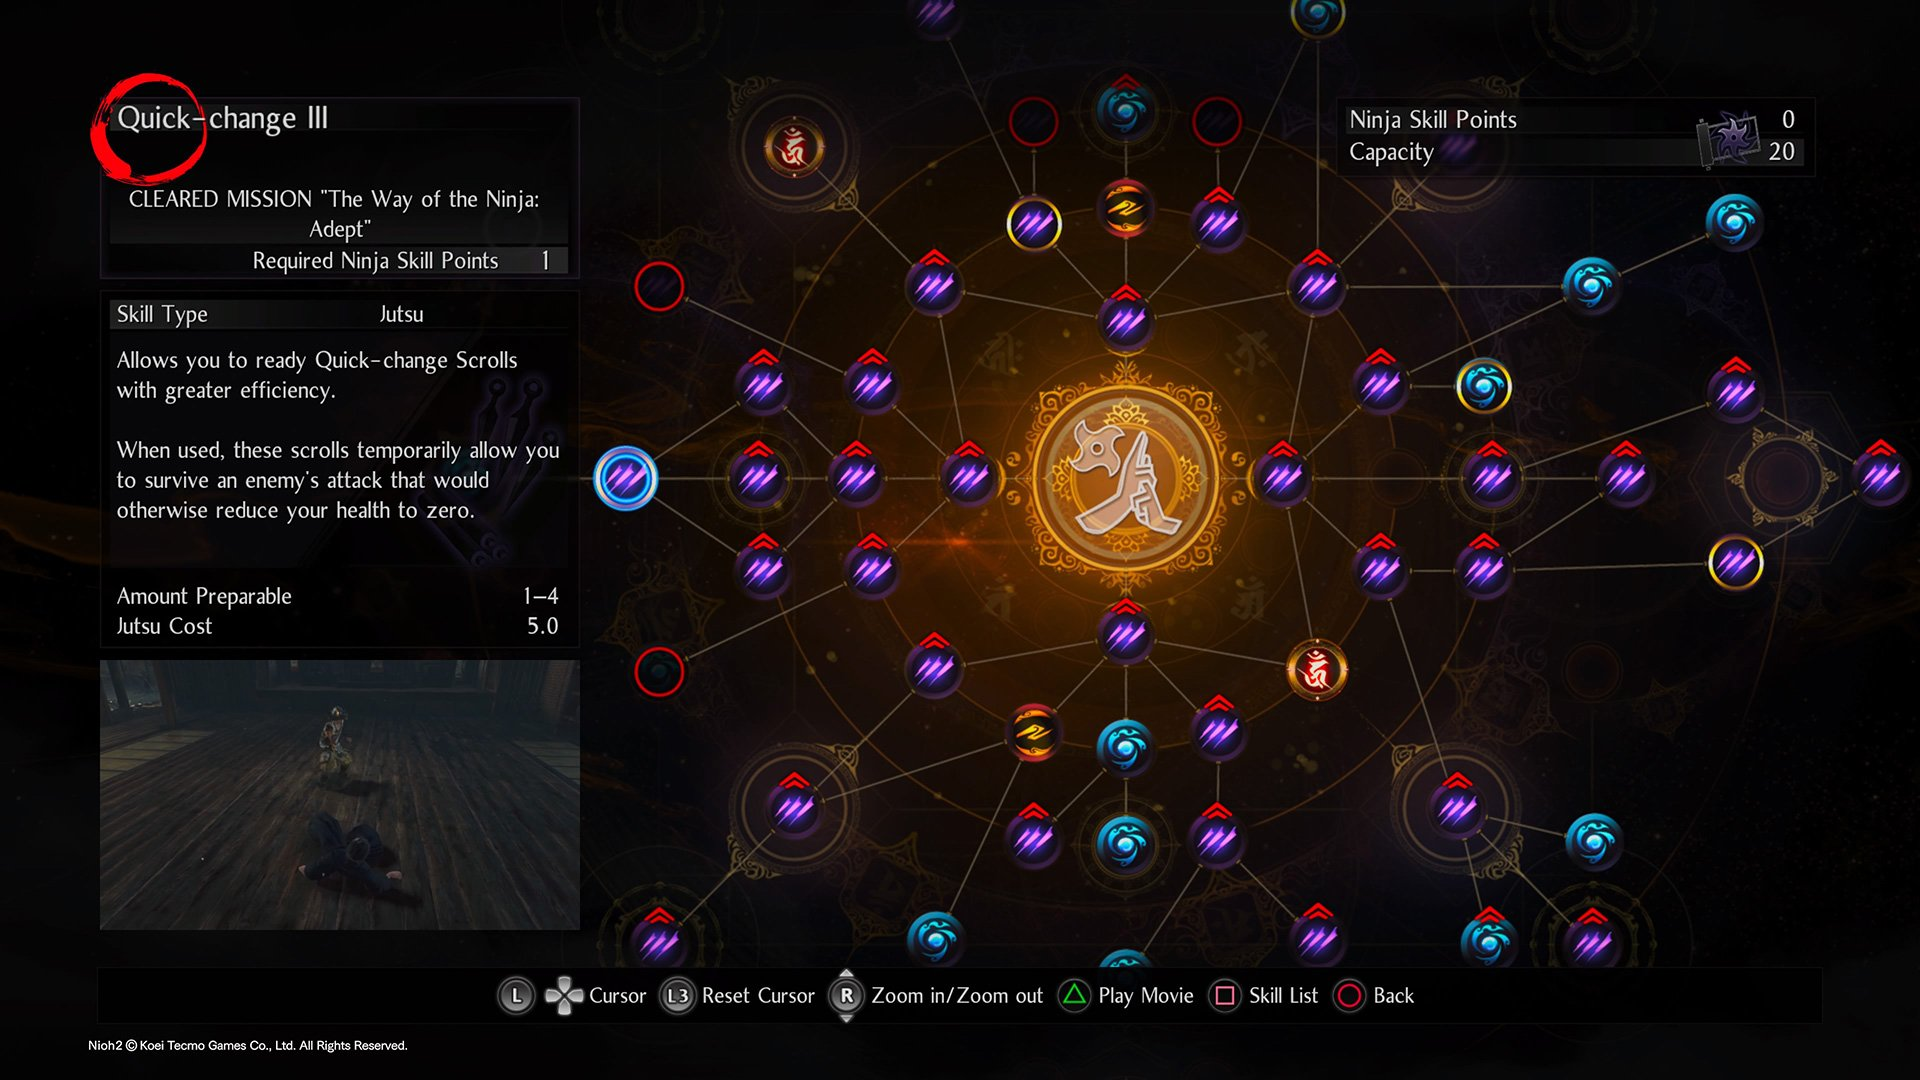 Where to find the Quick-Change Scroll on the Nioh 2 Ninjutsu skill tree